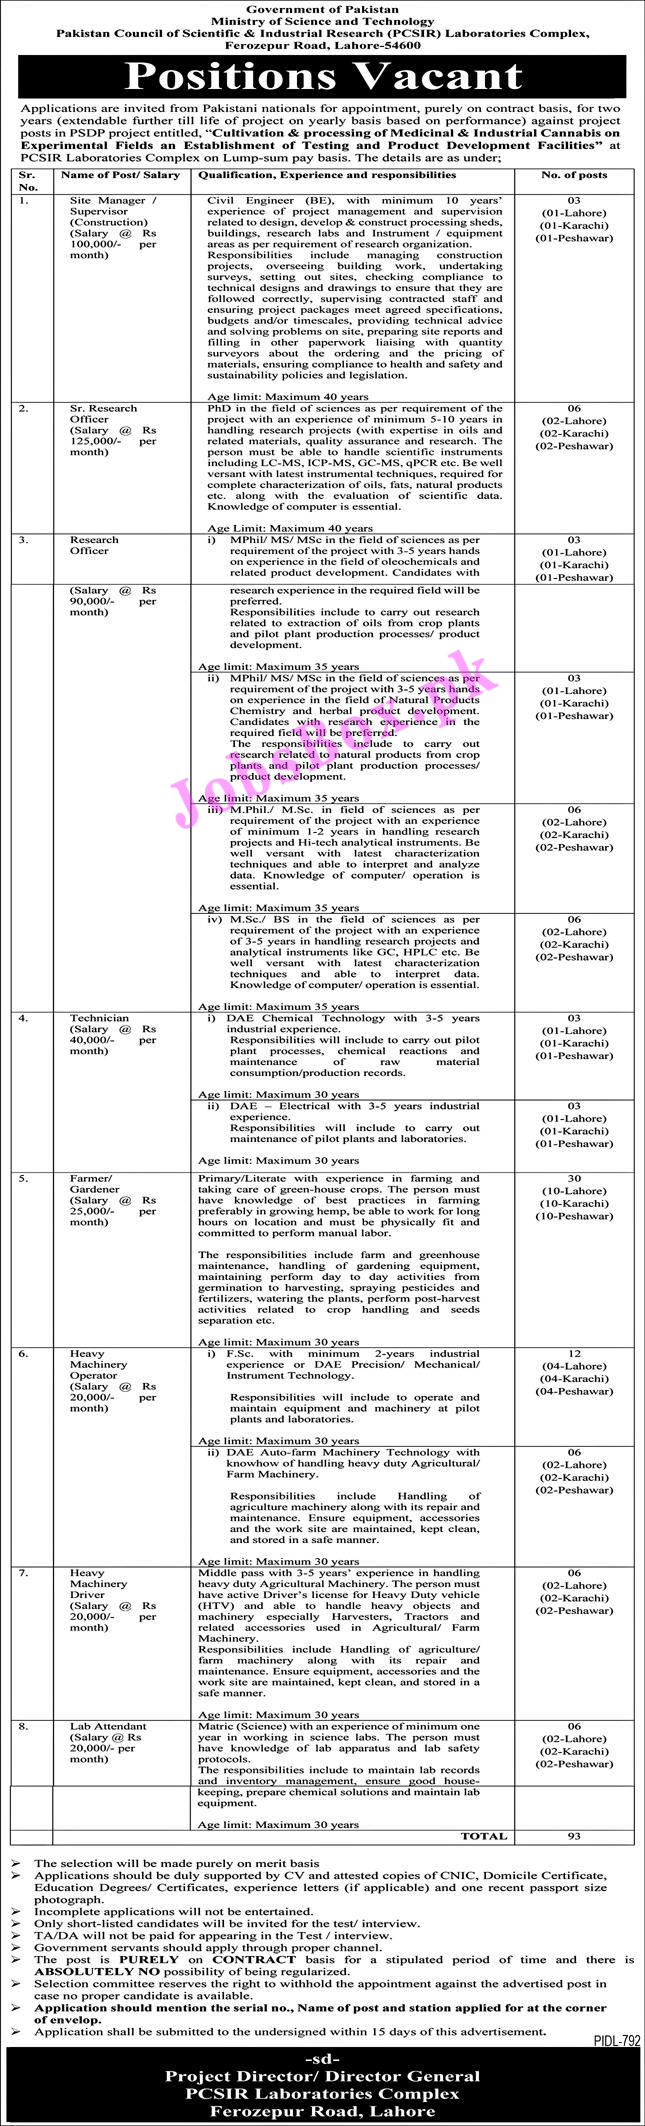 Ministry of Science & Technology MOST Jobs 2021 – PCSIR Jobs